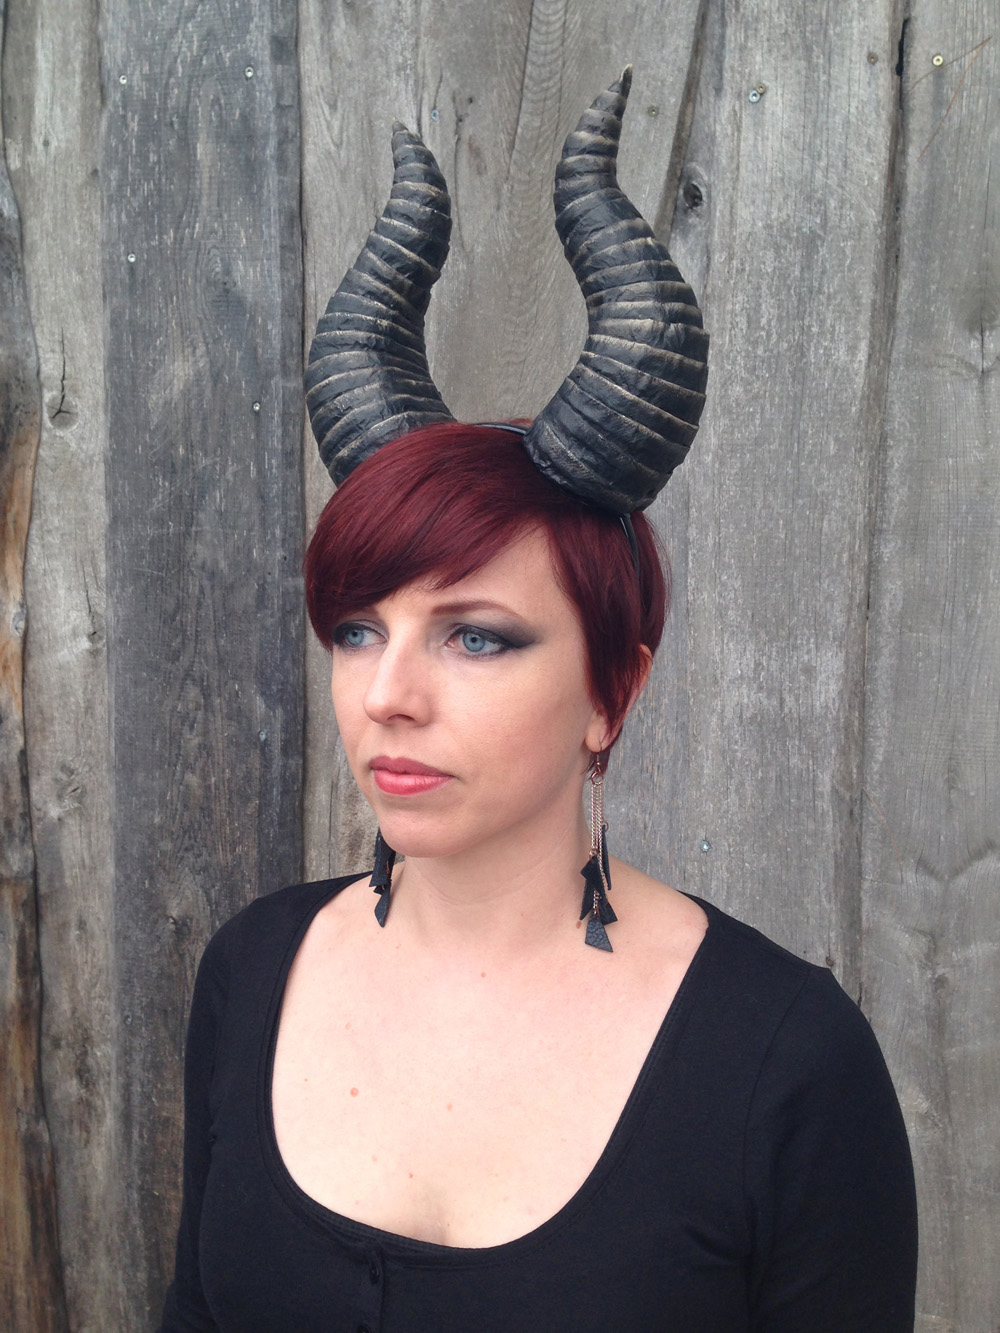 Sculpt Demon Horns from Foam and Paper Towels | Make: